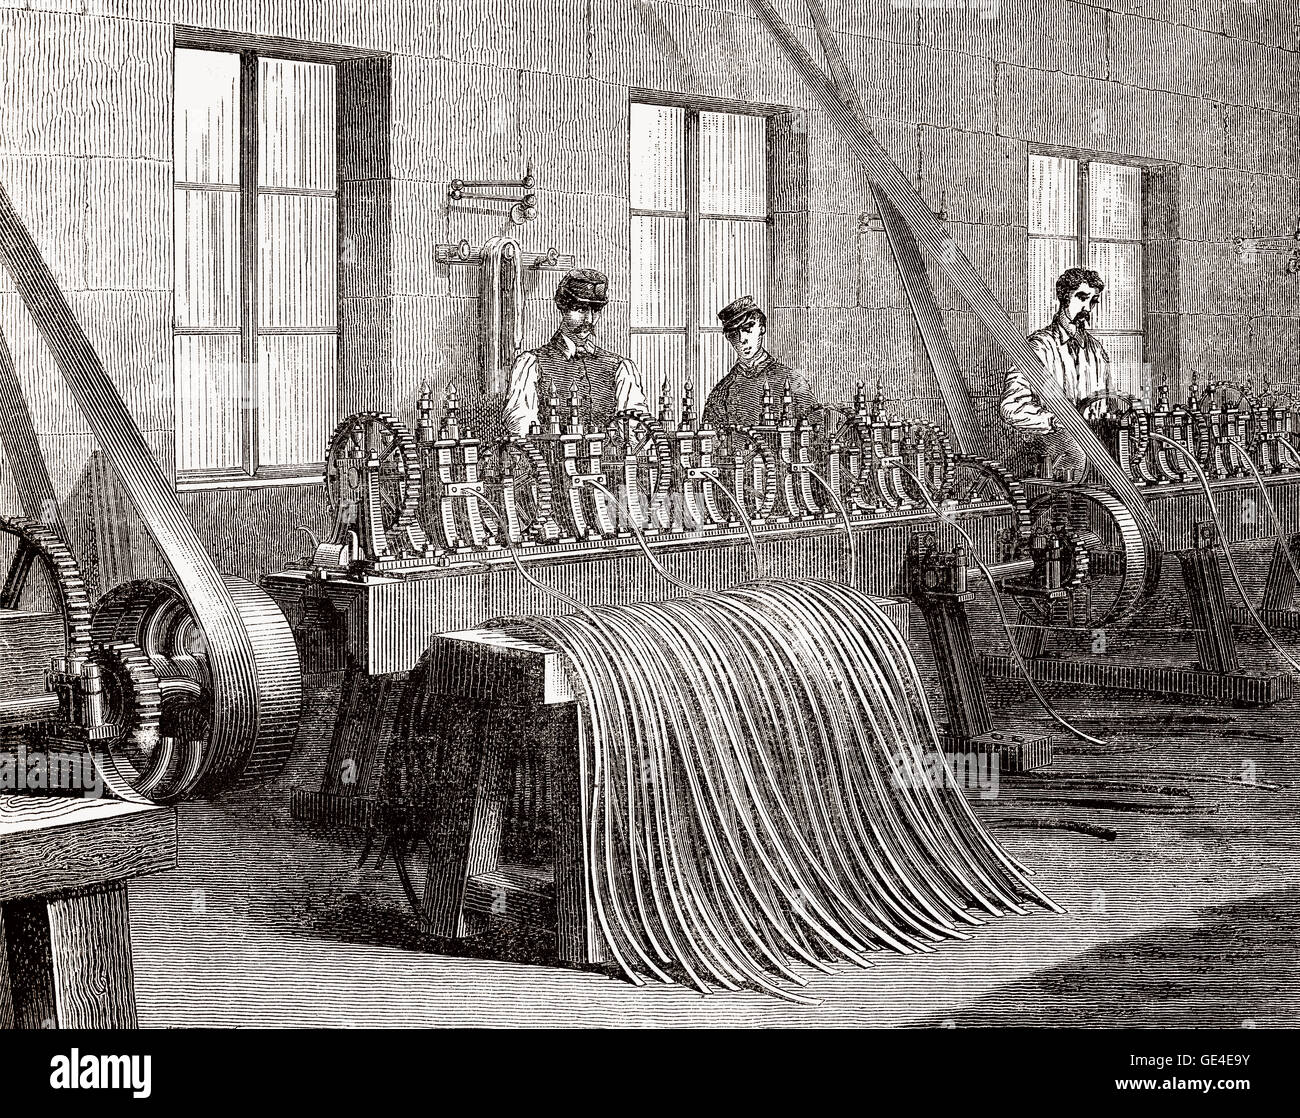 A cartridge case production, arms industry, France, 19th century - Stock Image